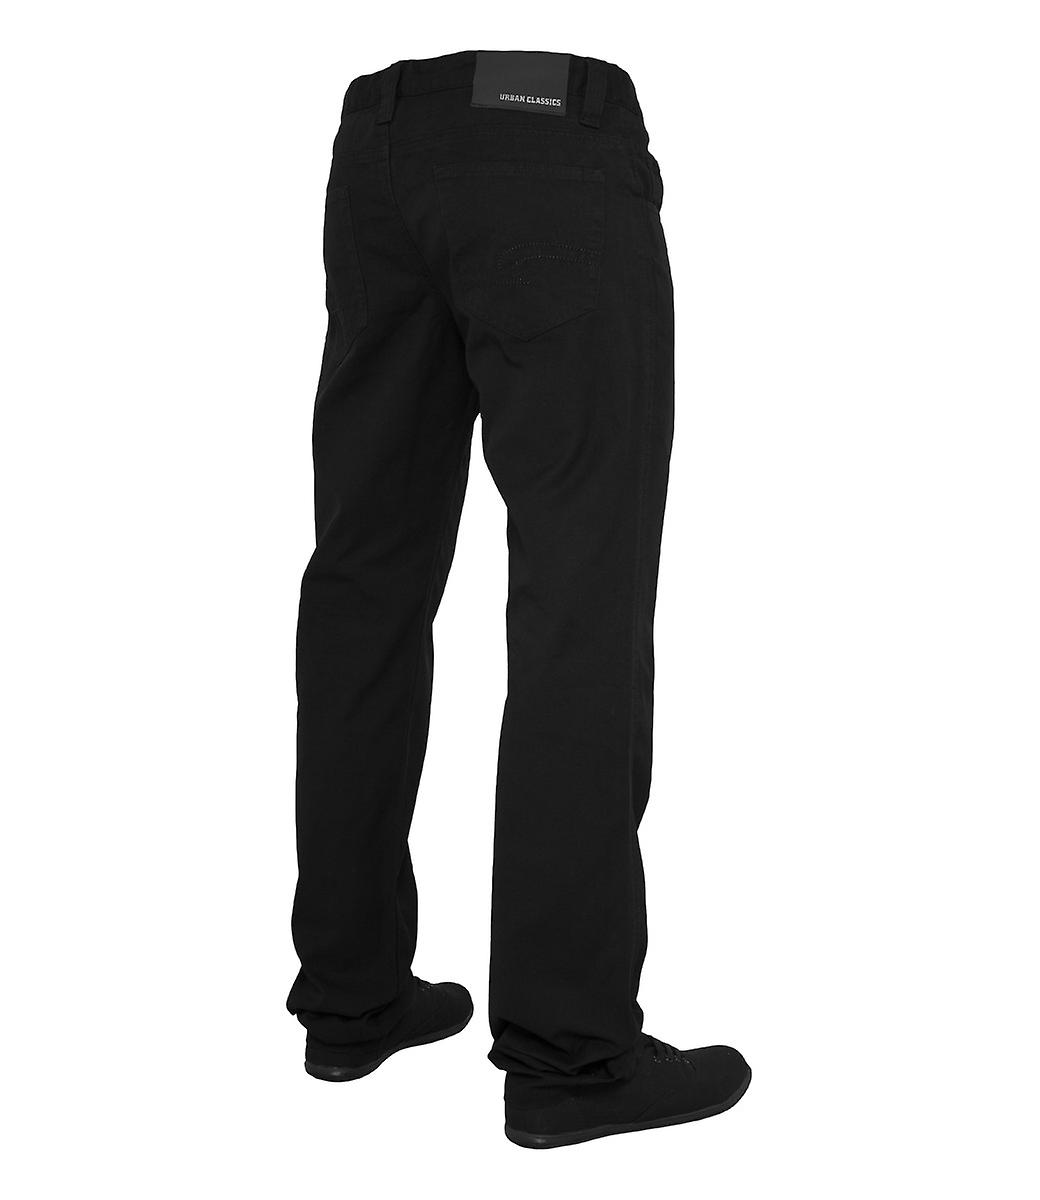 Urban Classics 5 Pocket Pants